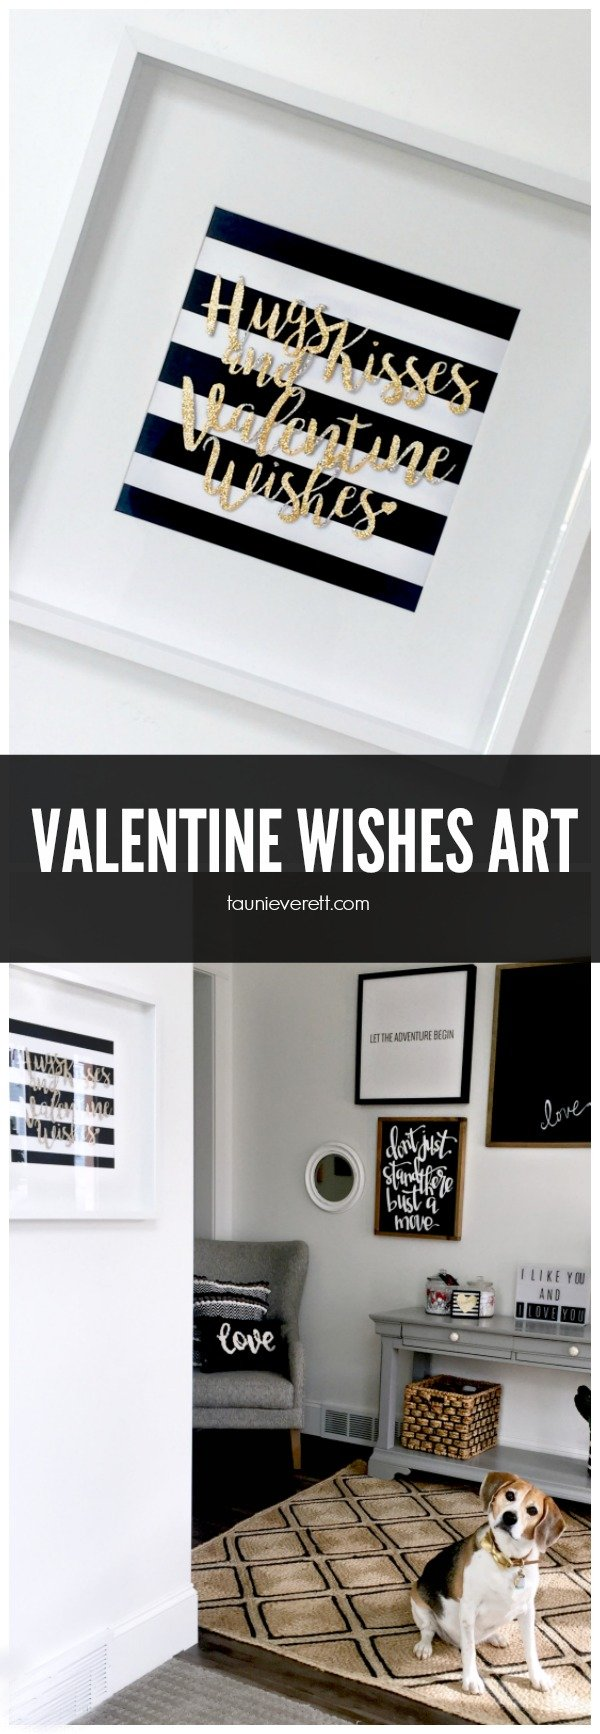 Valentine Wishes Art Pinterest